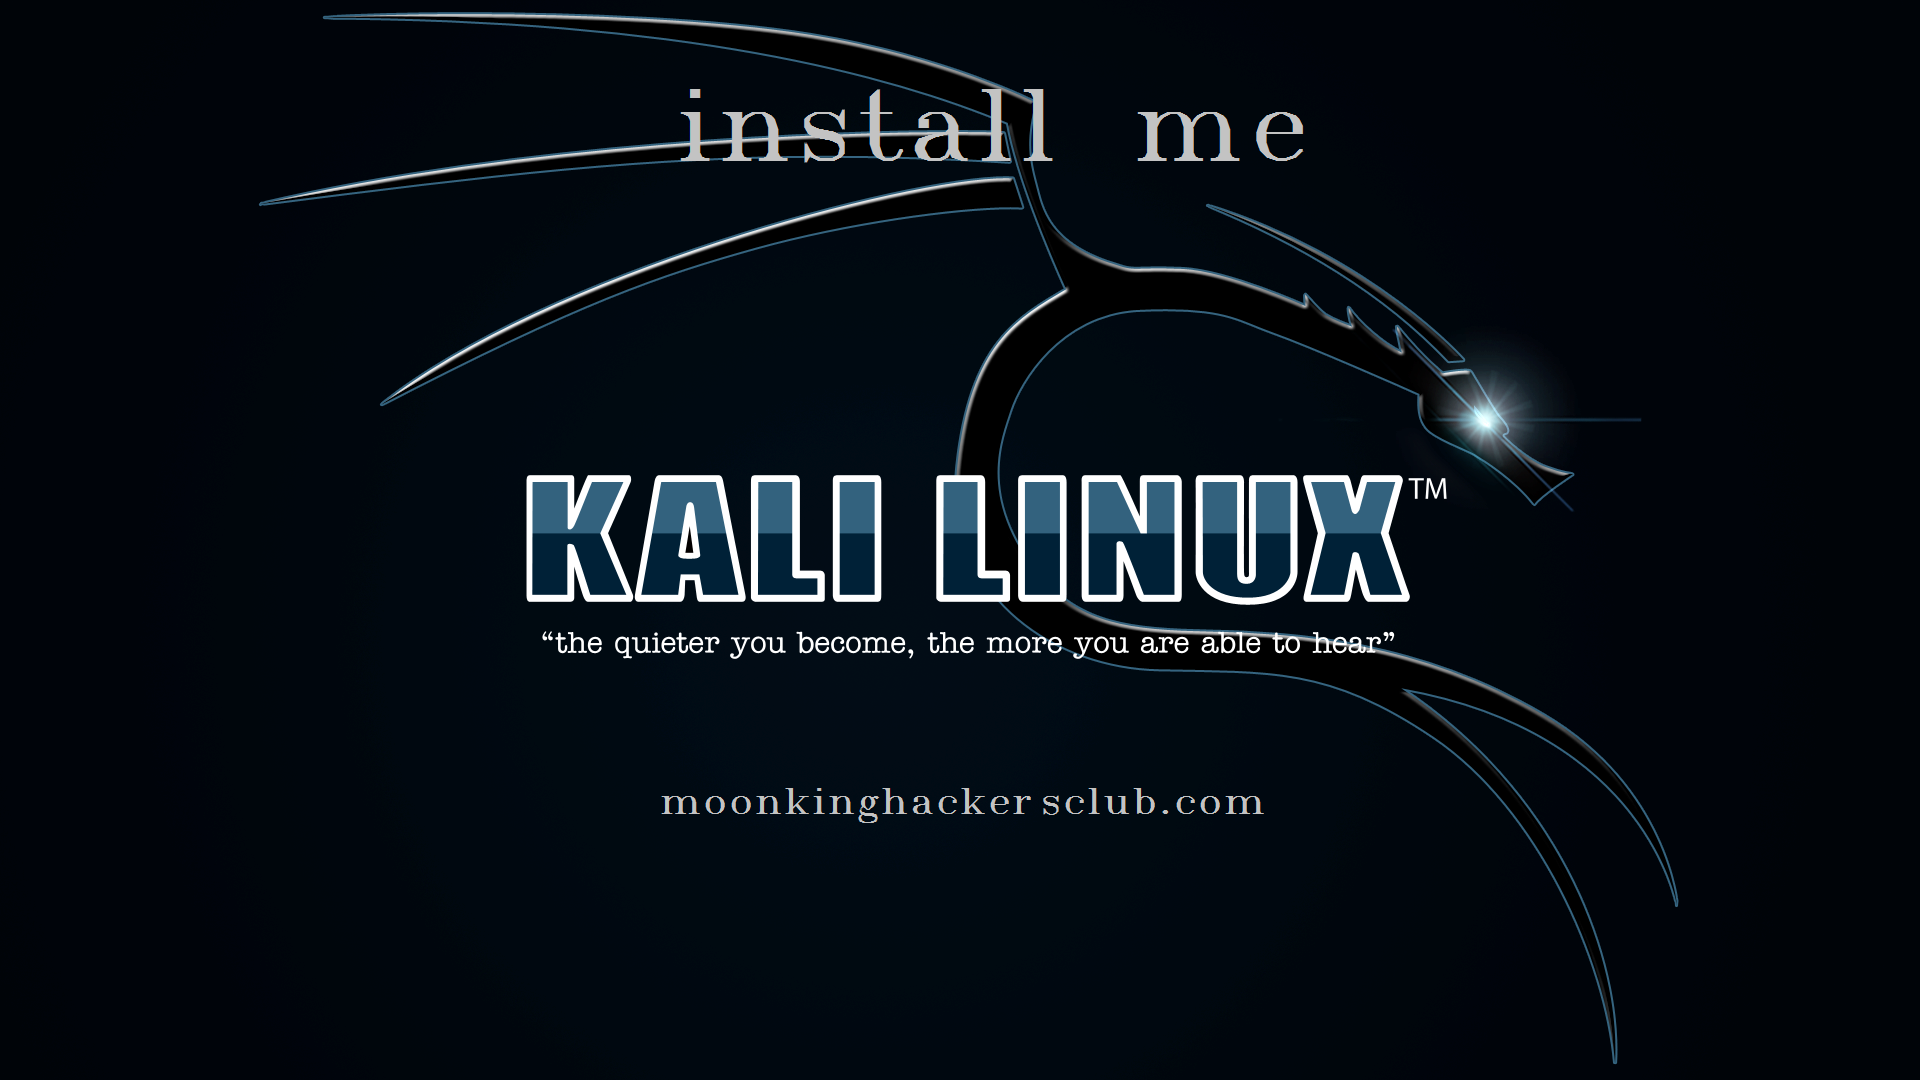 How to install intel hd graphics driver in kali linux